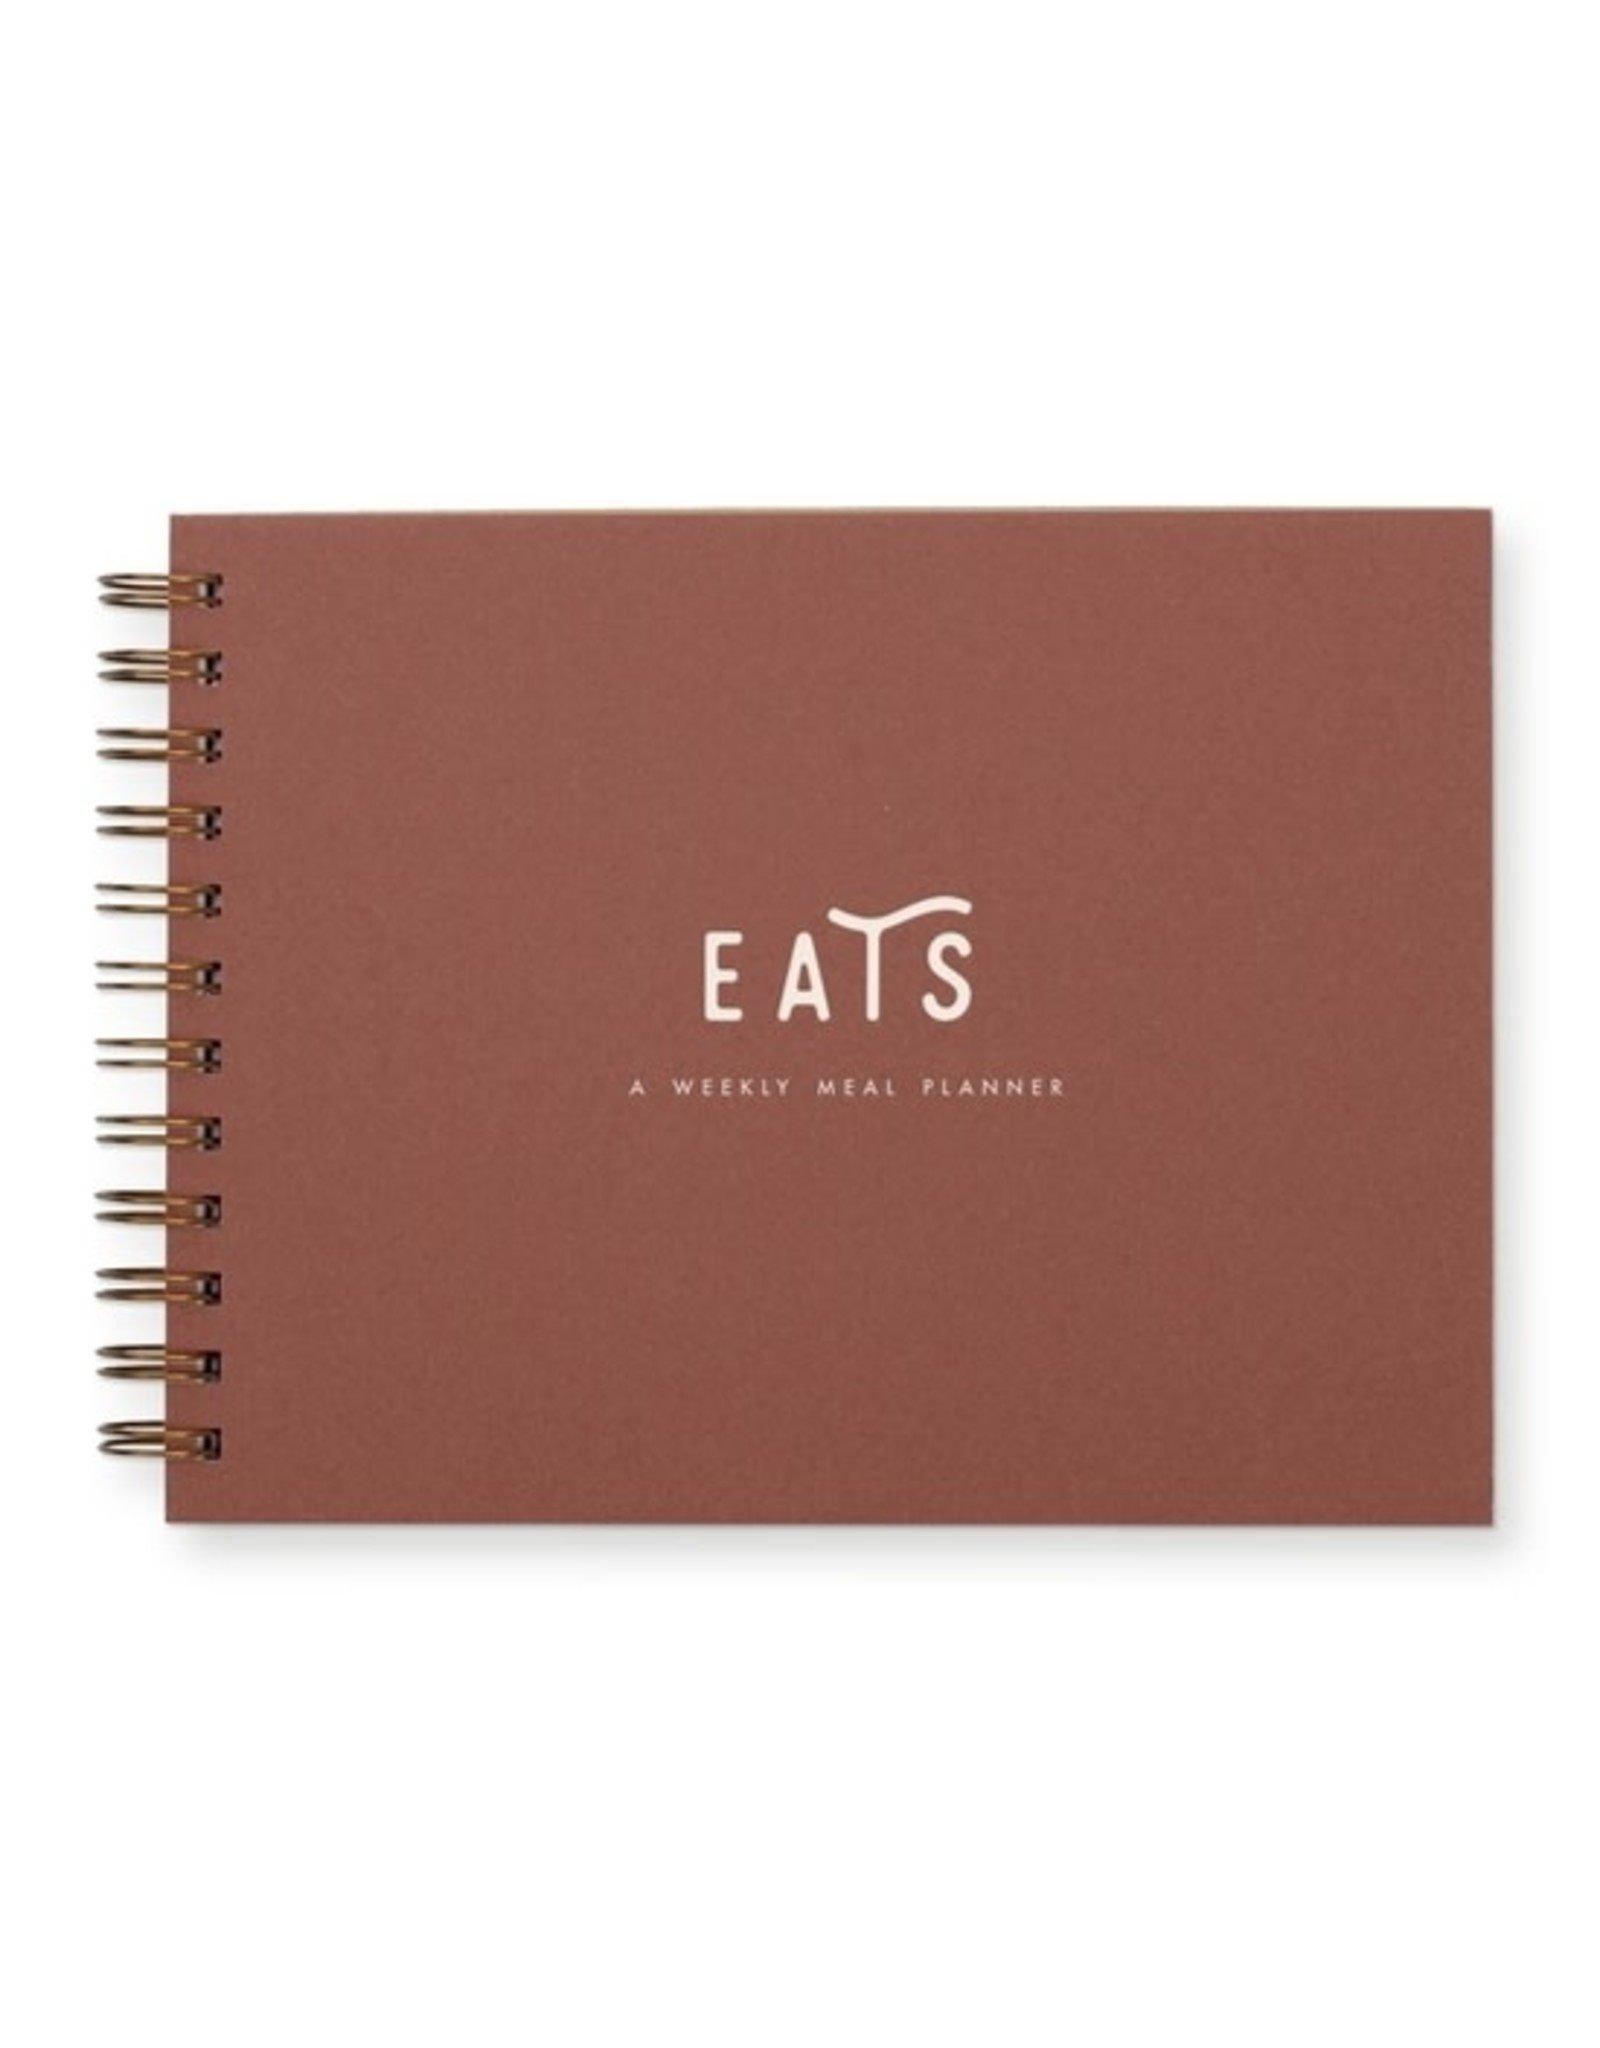 Ruff House Print Shop Simple Meal Planner - Terracotta